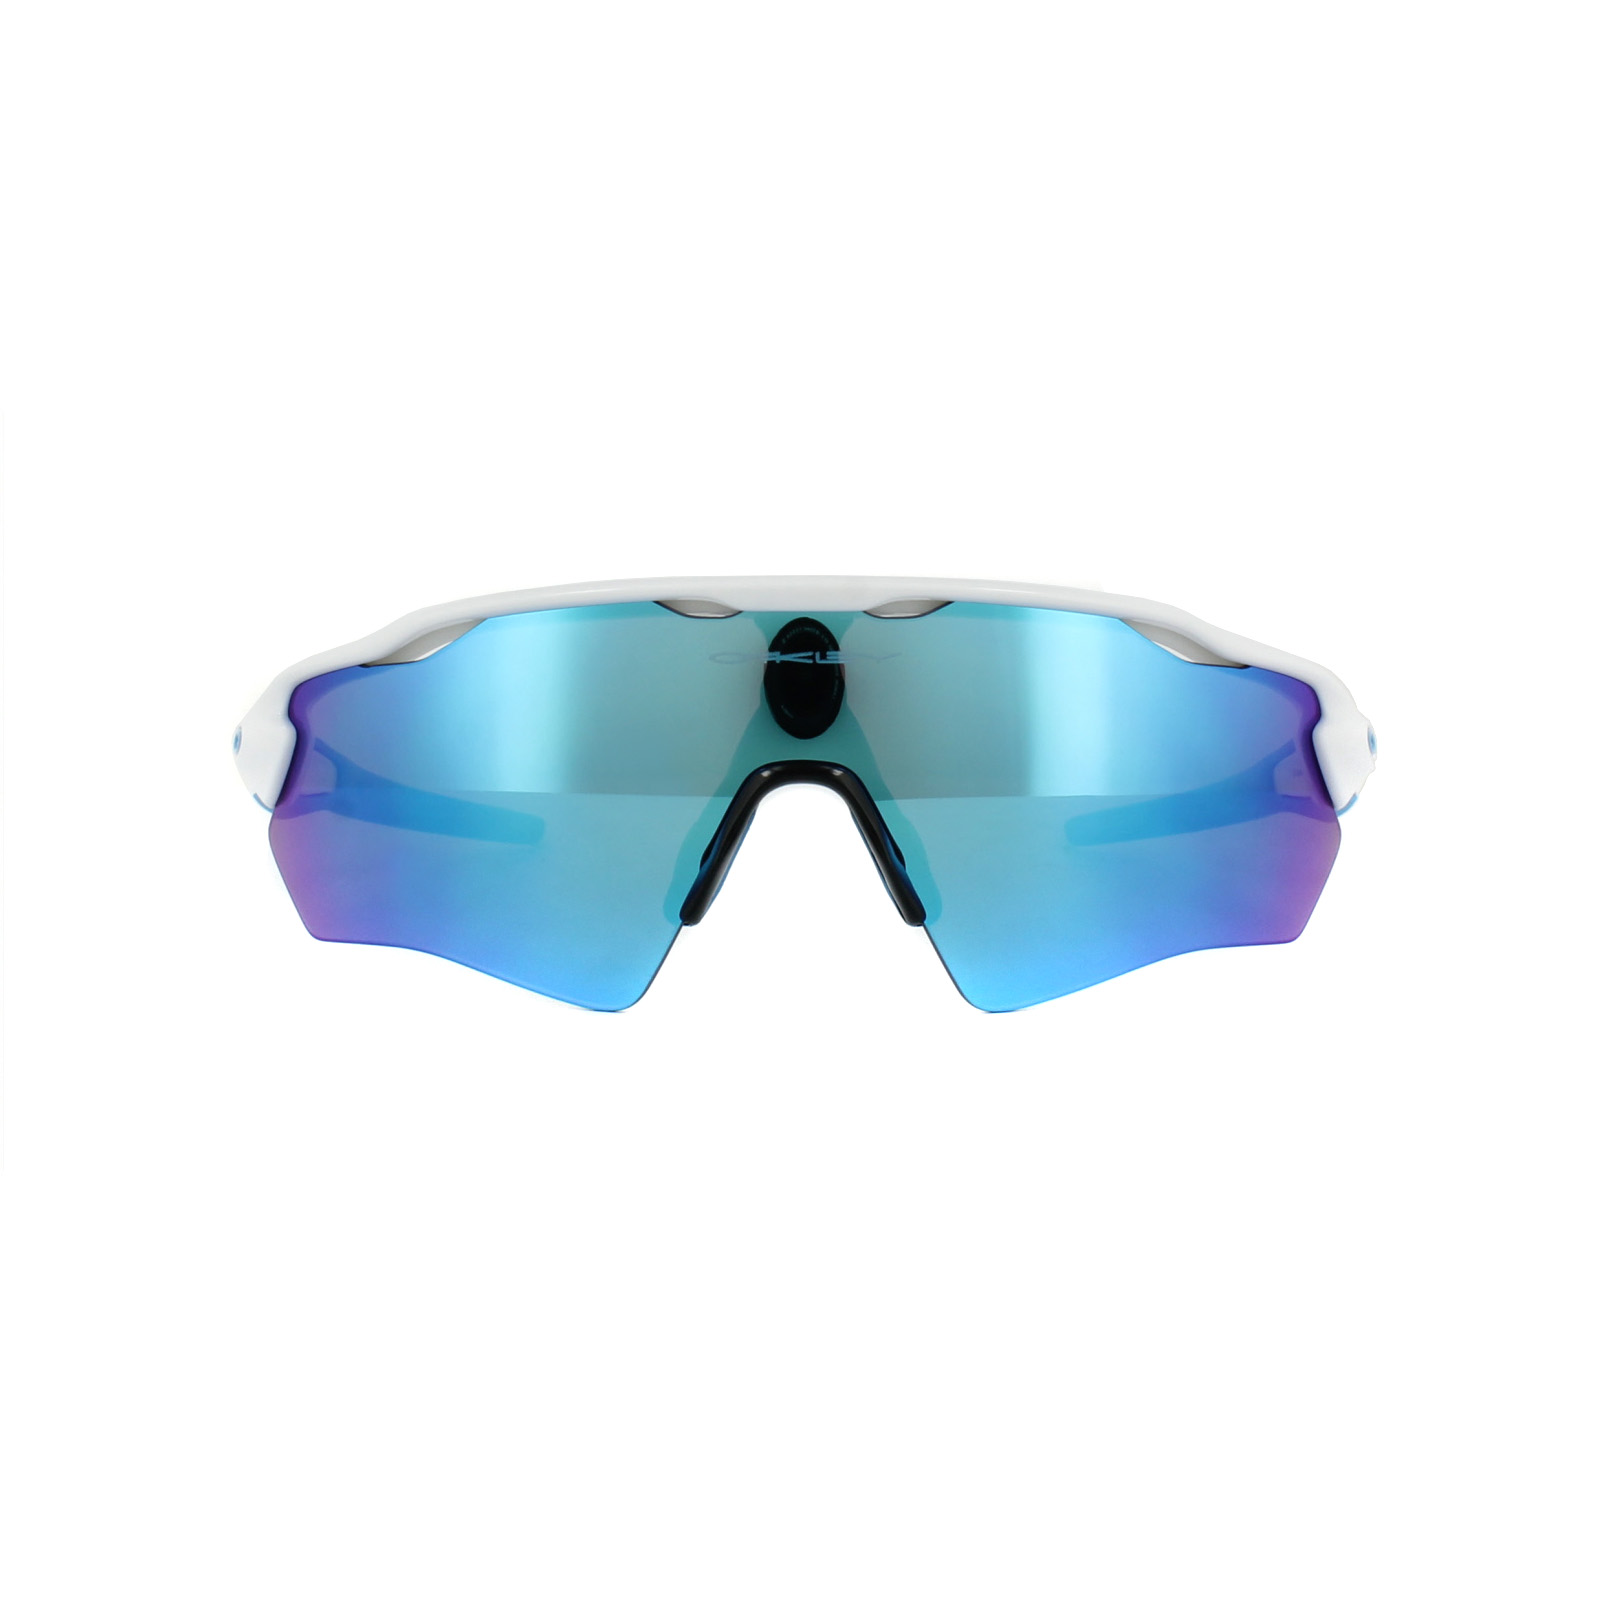 ee96be8995b4 Sentinel Oakley Sunglasses Radar EV XS Path Youth Fit OJ9001-01 White  Sapphire Iridium